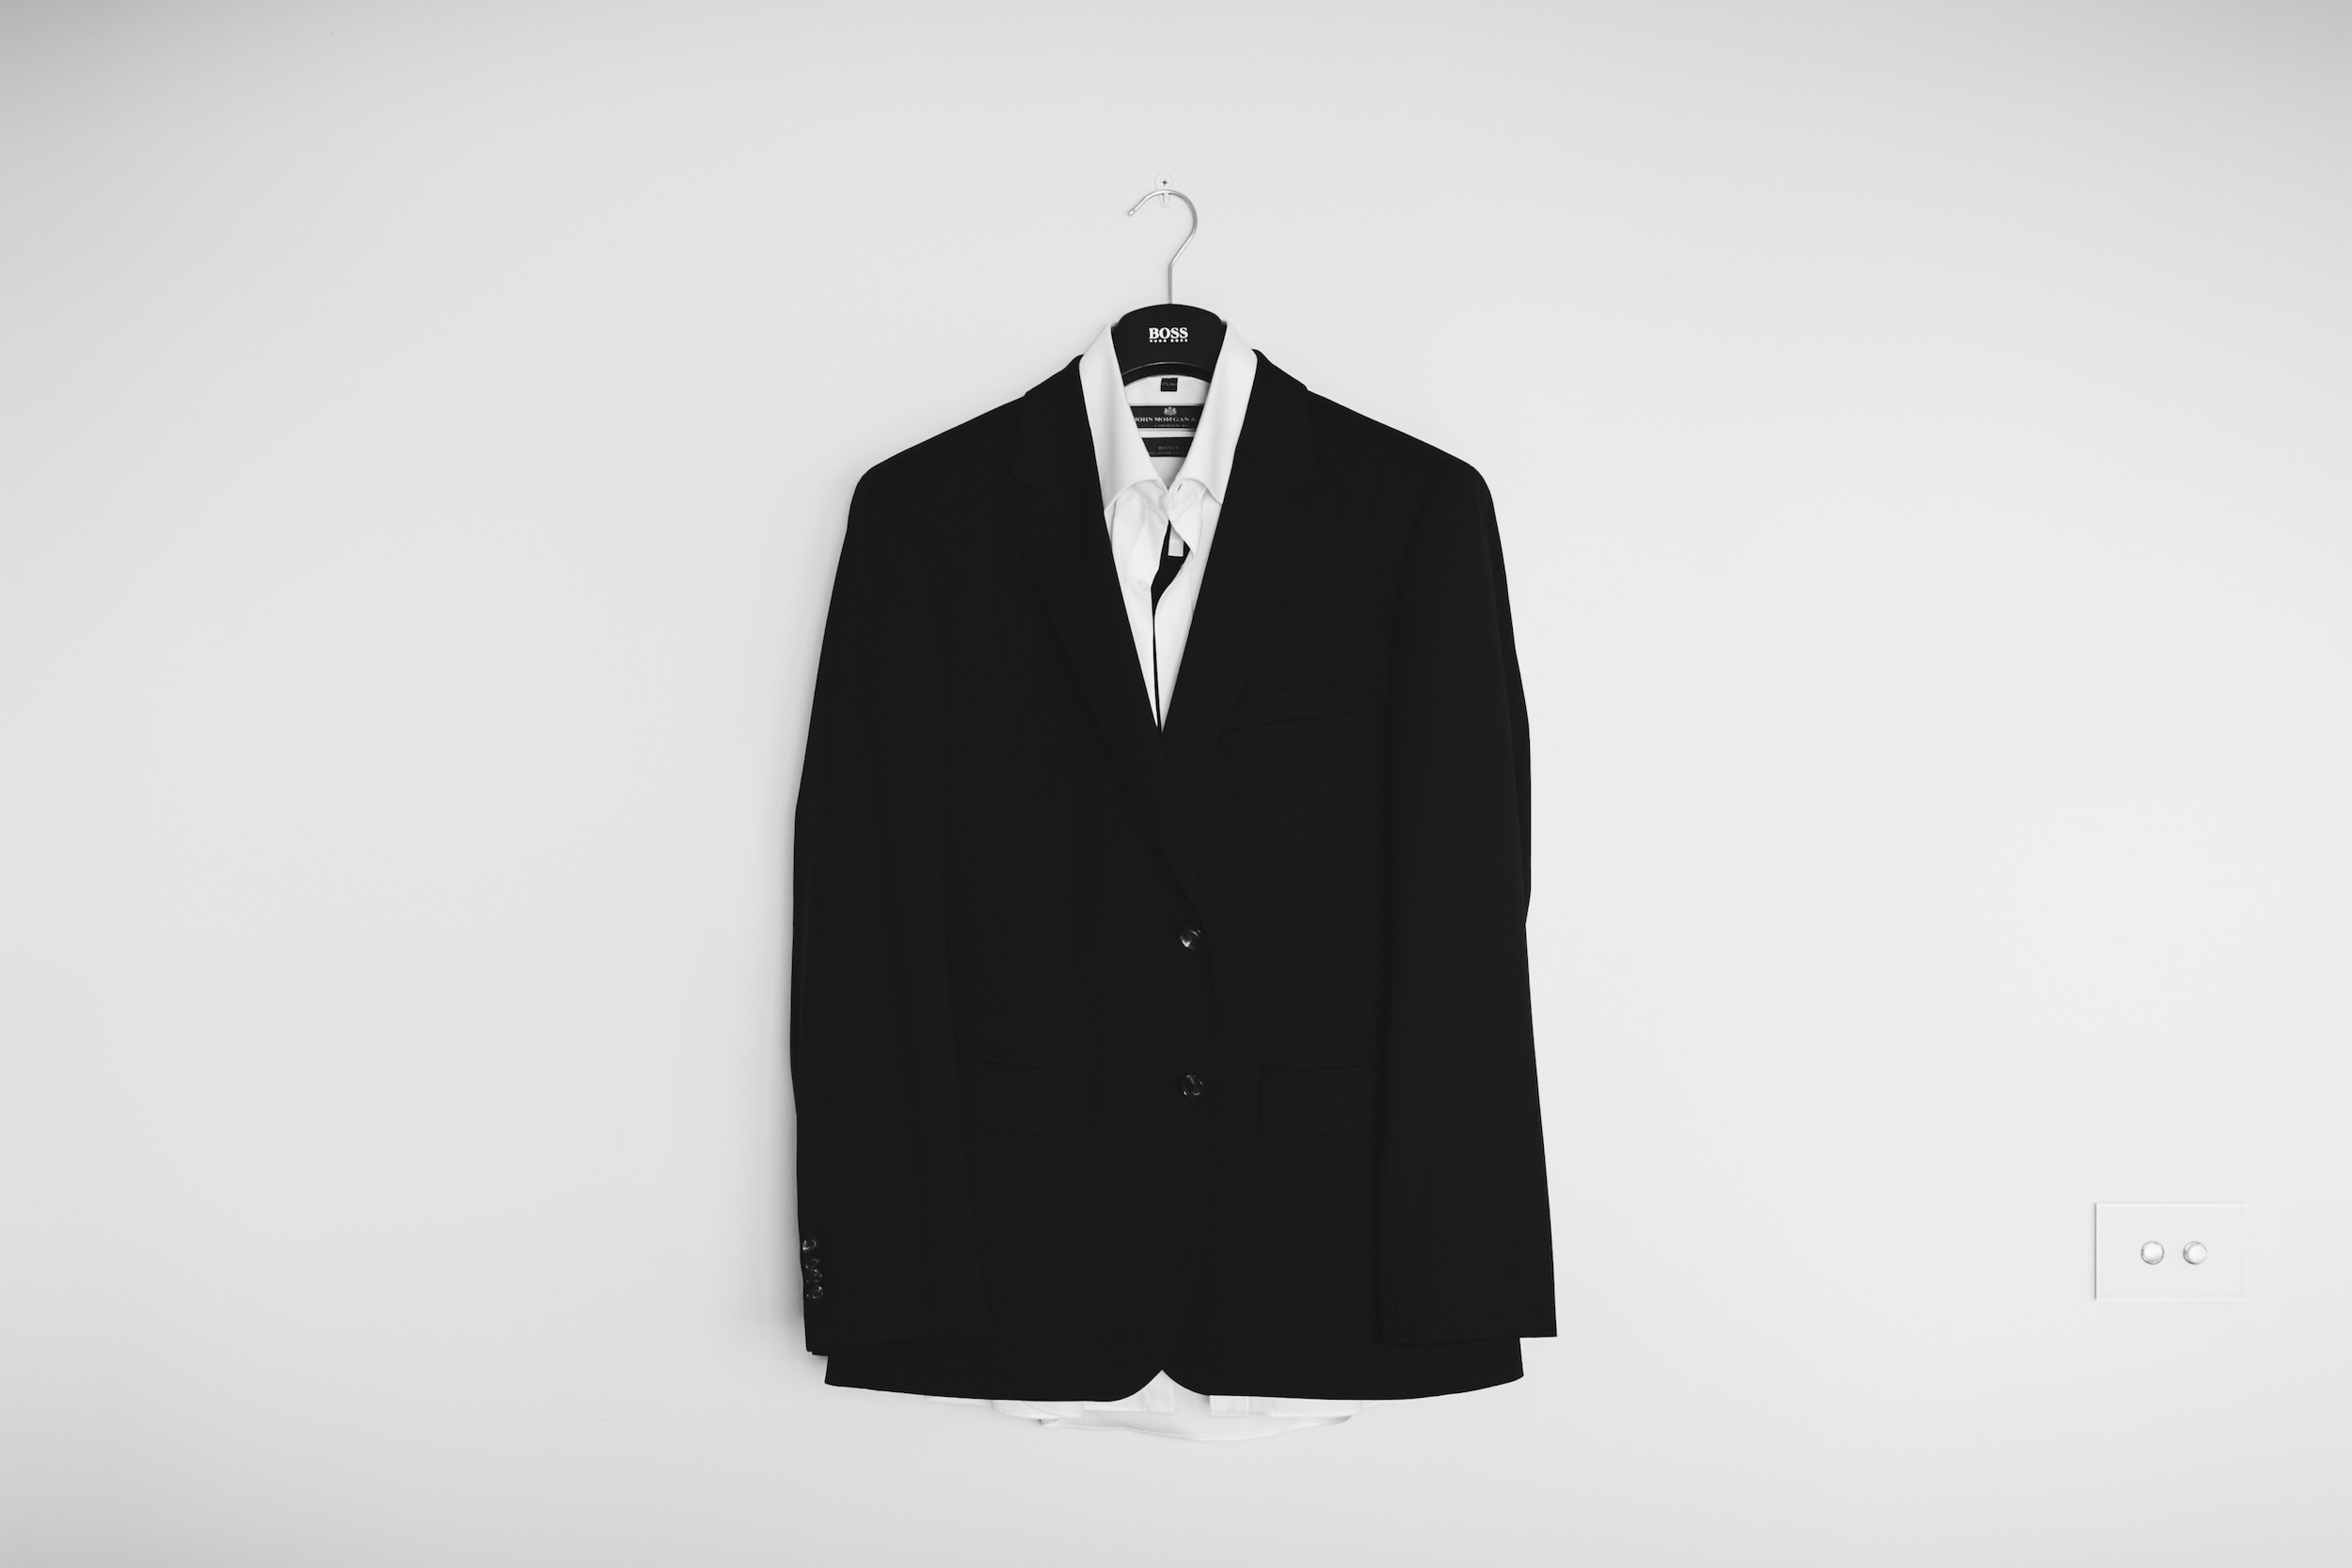 a laid out custom suit hanging on the wall